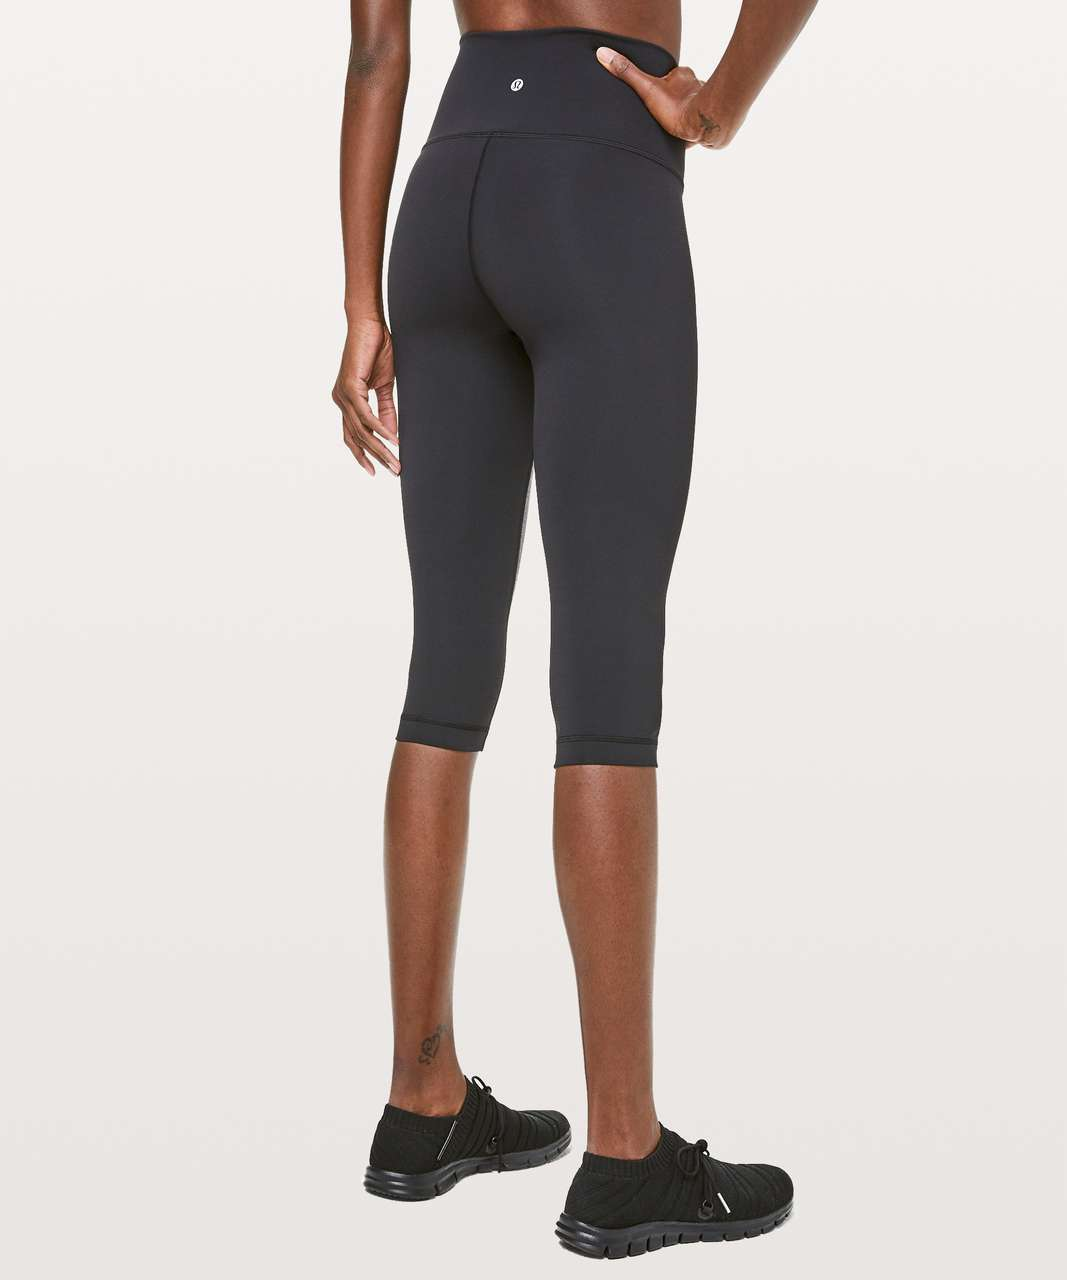 "Lululemon Wunder Under Crop High-Rise *Curve 17"" - Heathered Black / Black"